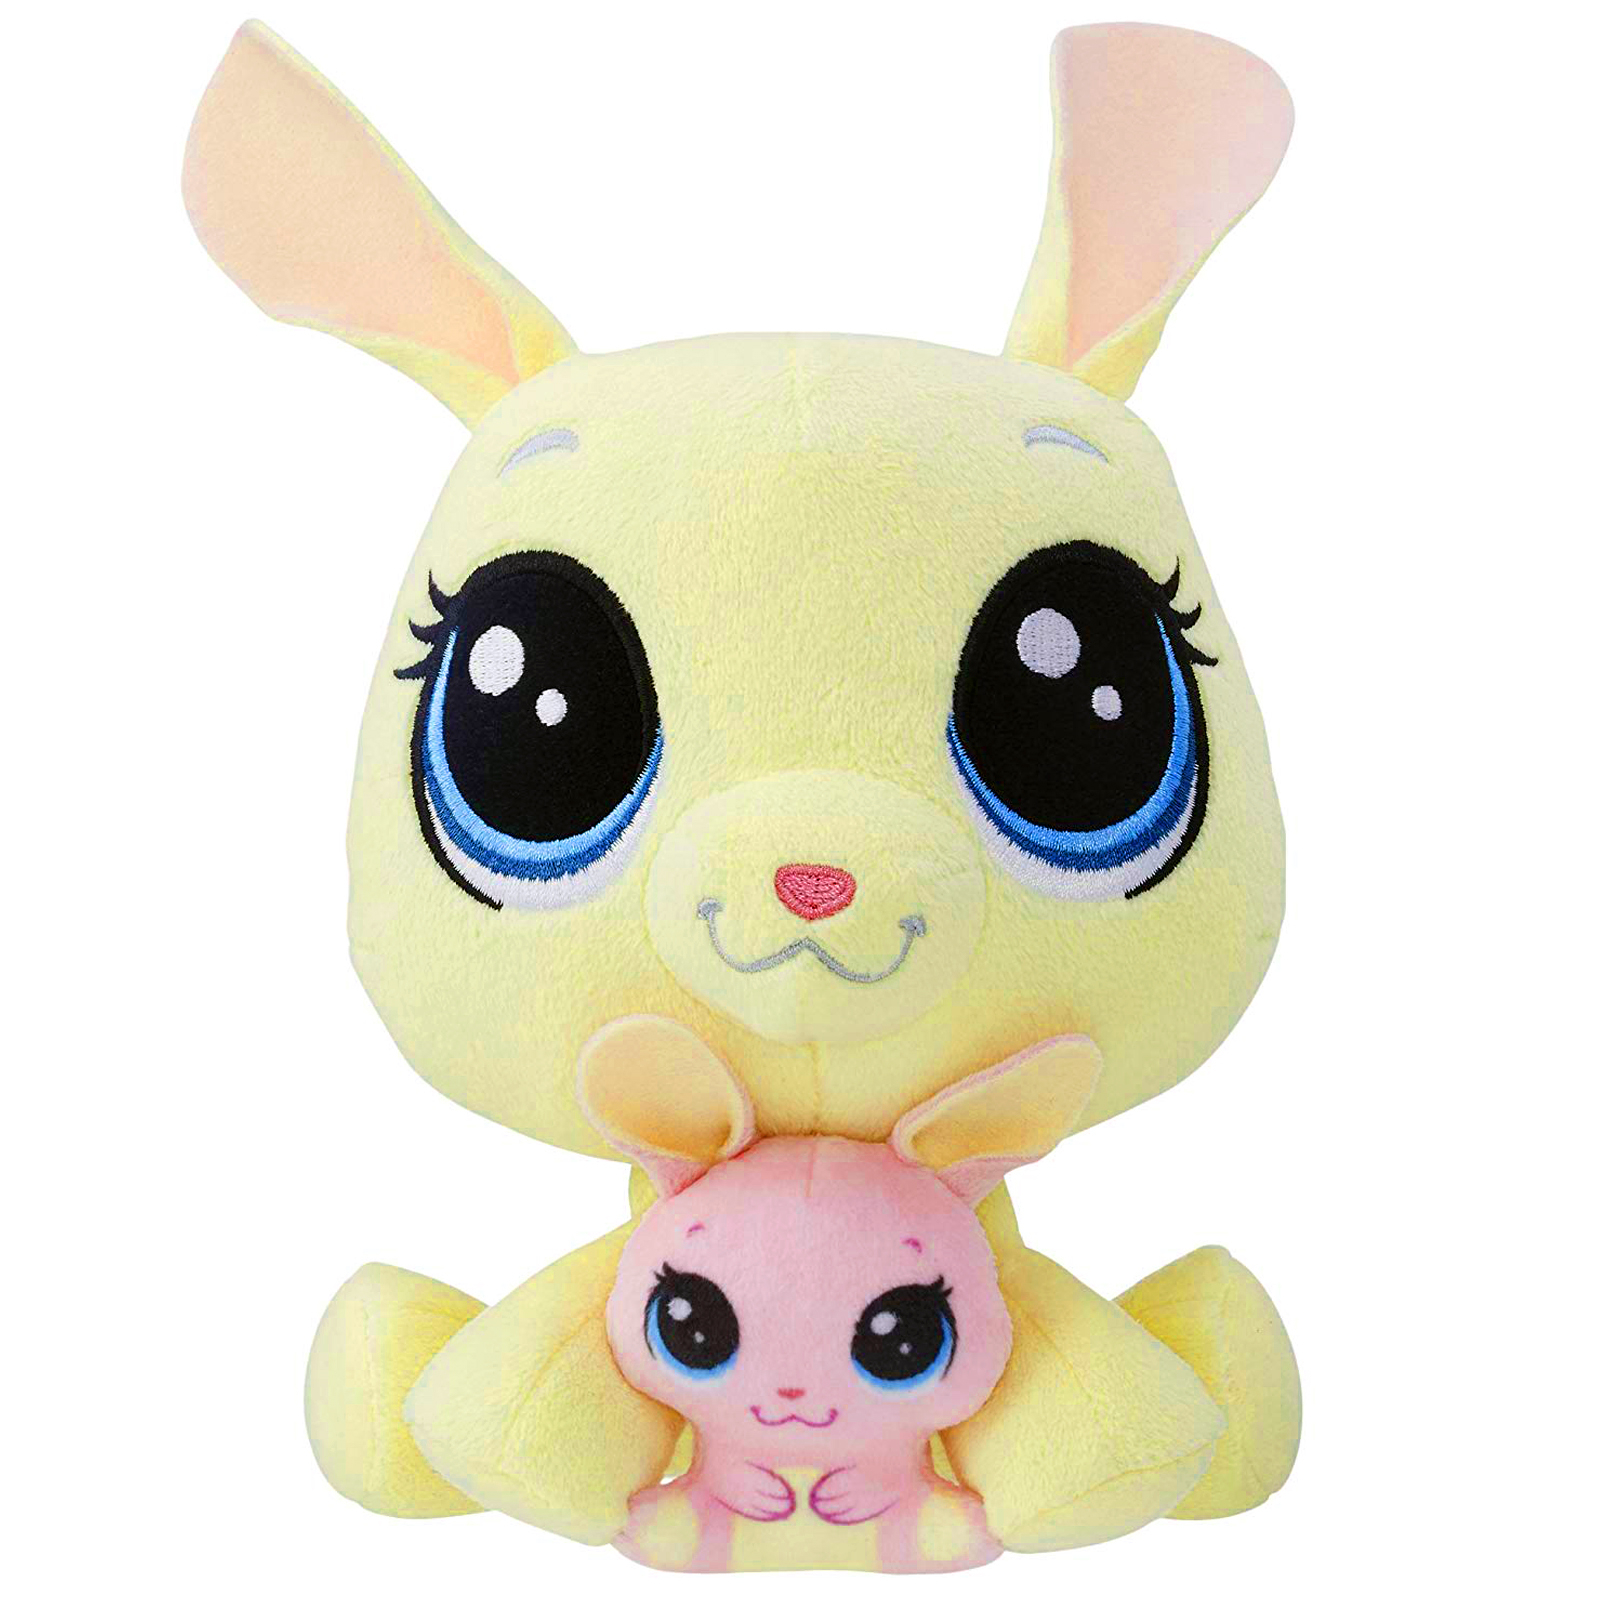 ea1163e3c25 Littlest Pet Shop Vanilla Velvetears and Bijou Velvetears Soft Plush Pairs